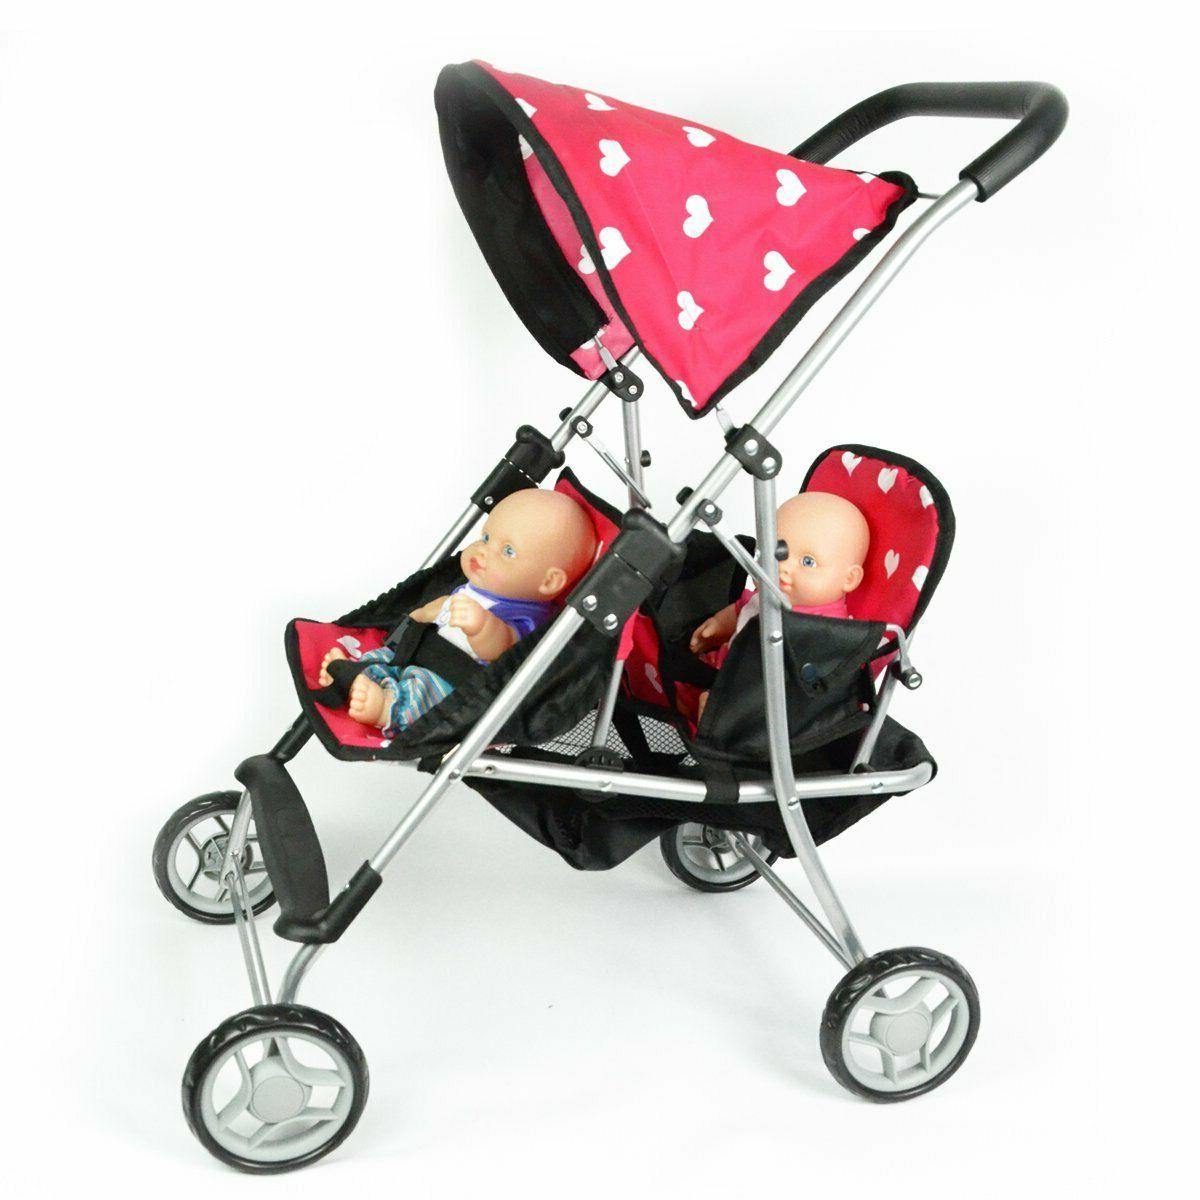 BOB 2016 Revolution Flex Stroller - Black